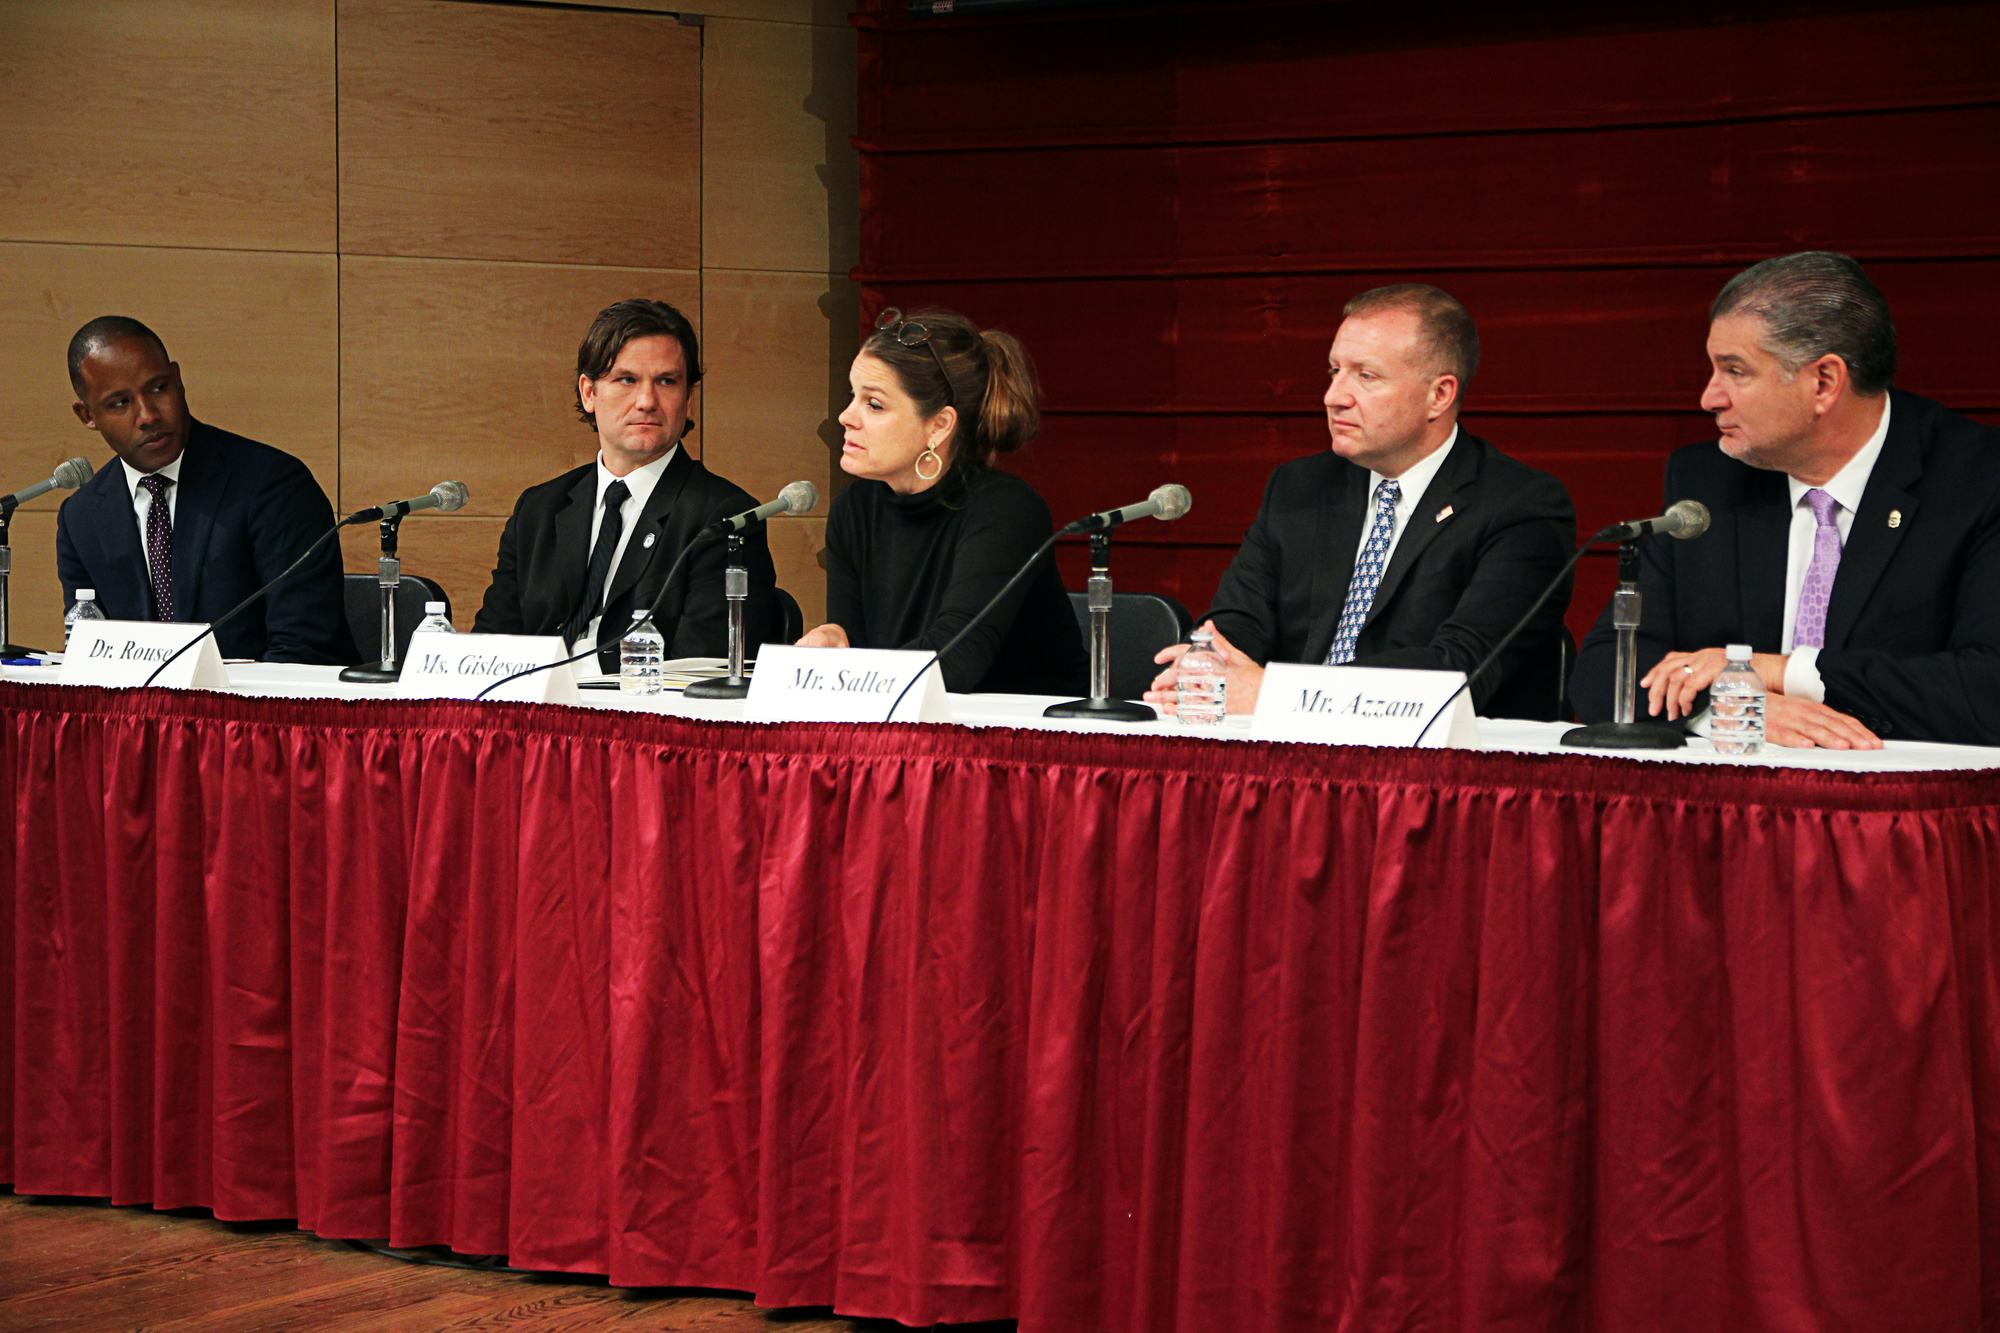 Loyola hosts screening and panel discussion about heroin addiction